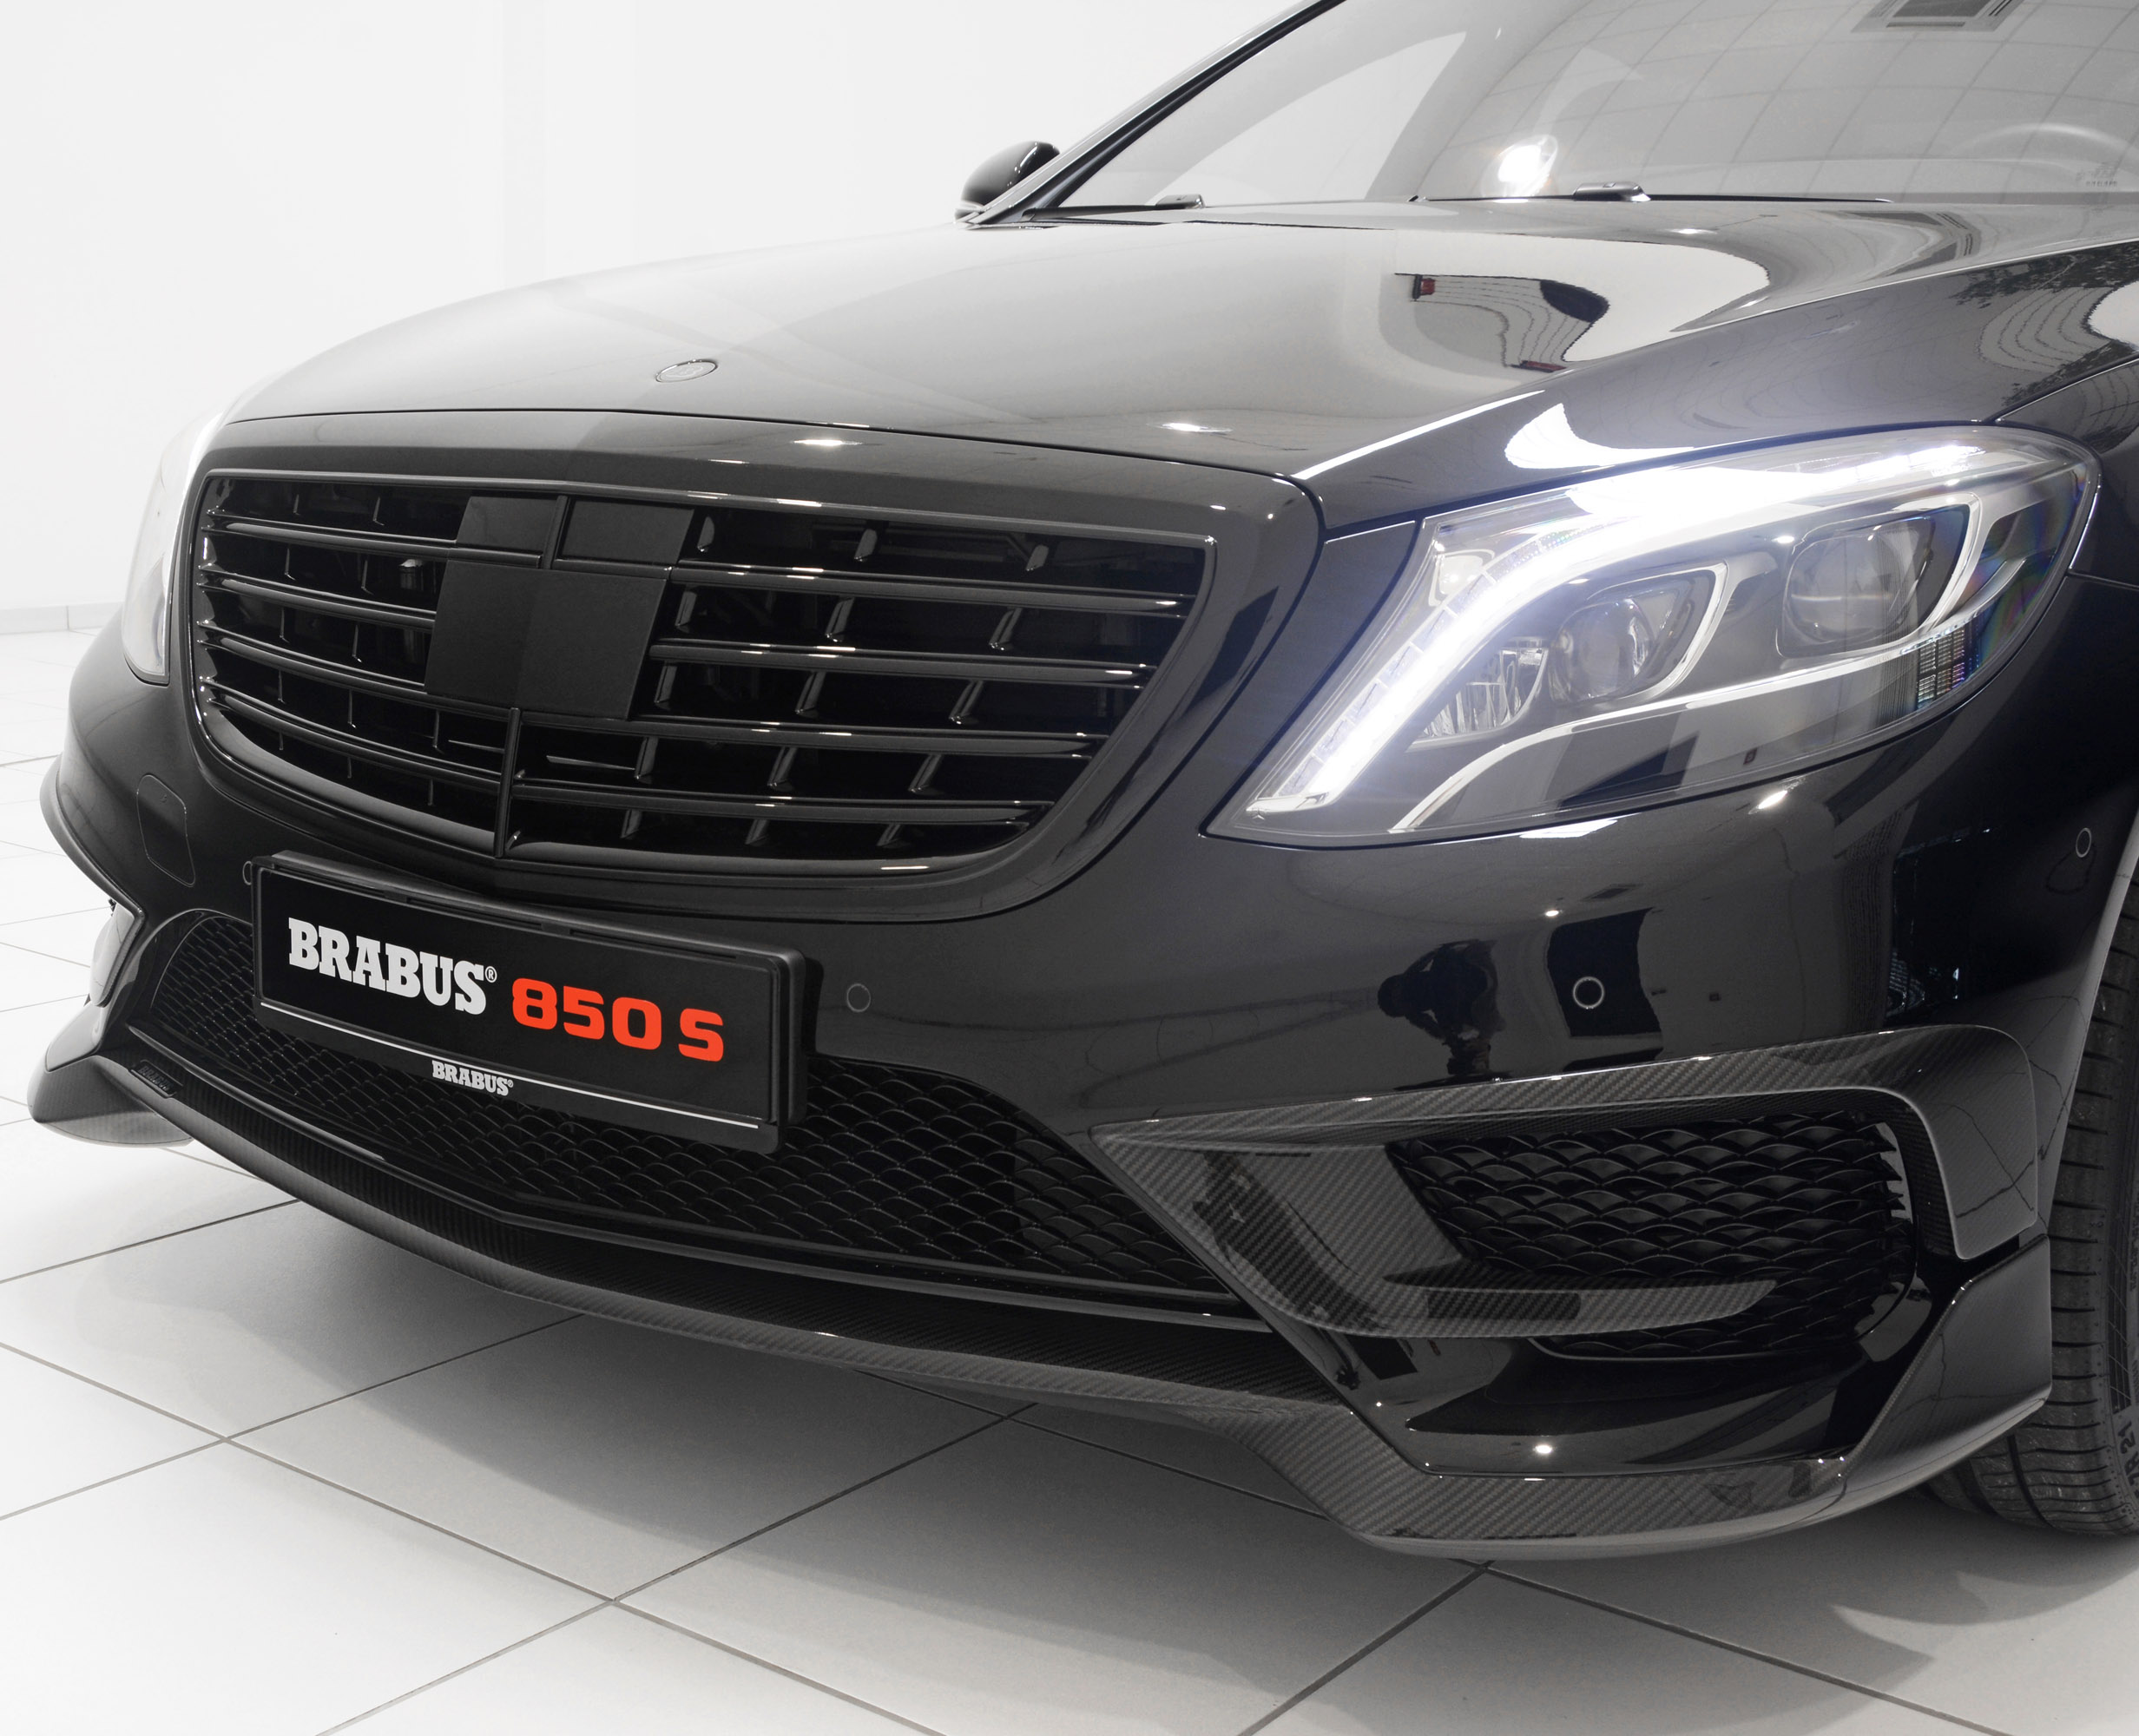 brabus 850 s based on 2014 mercedes